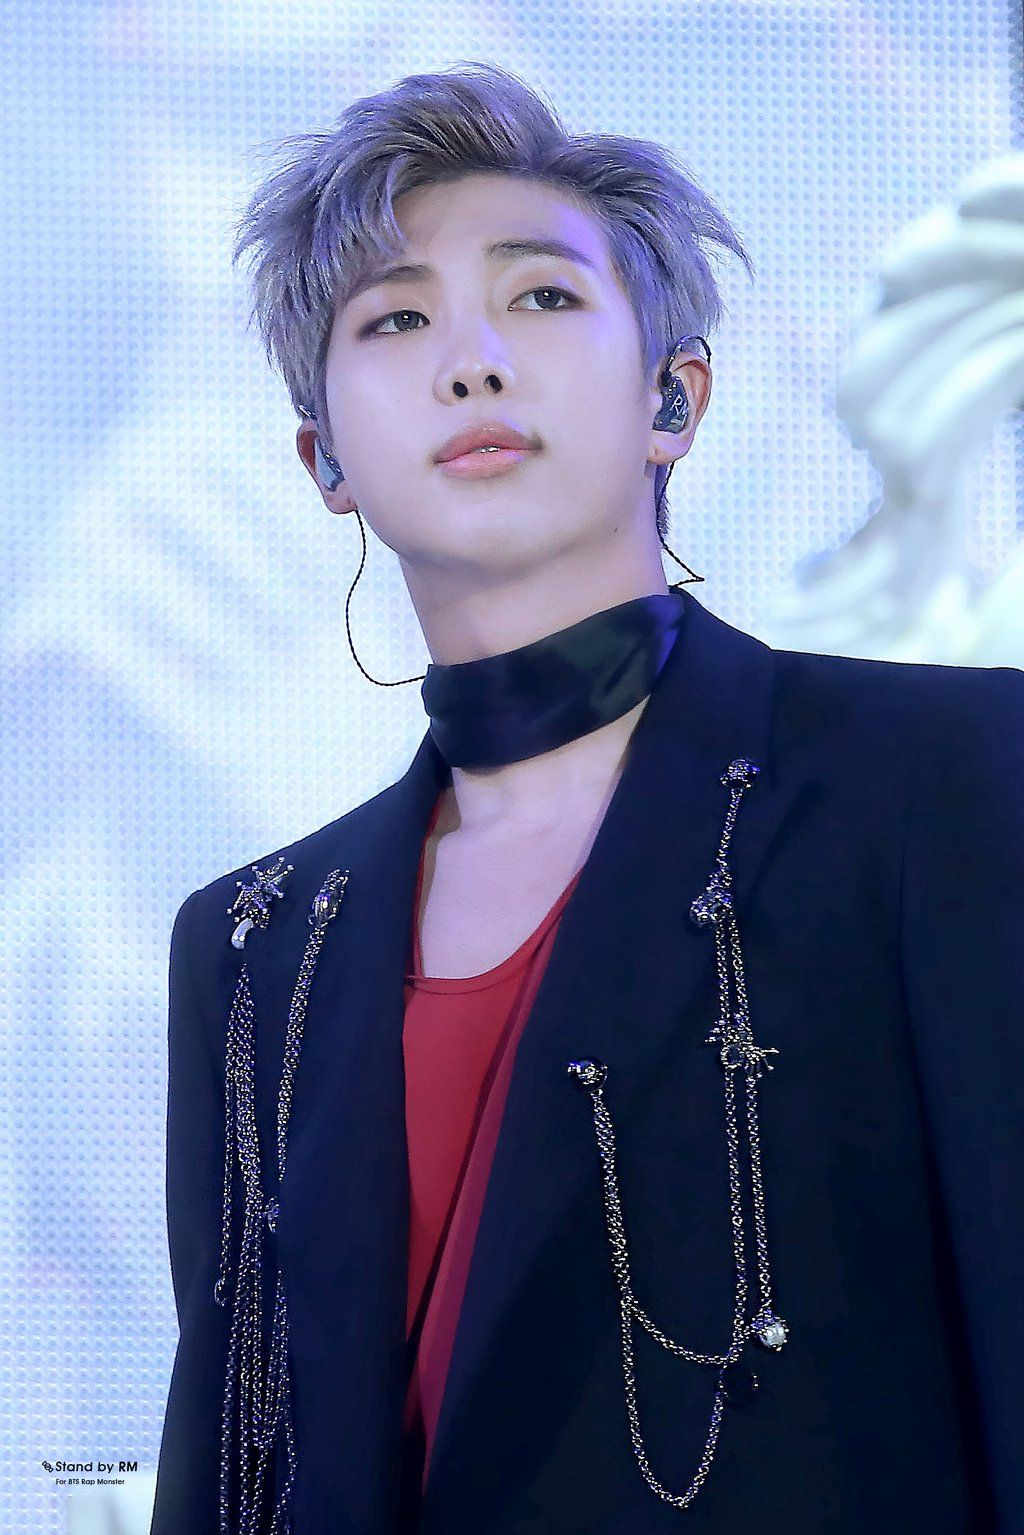 Stand By Rm Do Not Edit Pinteres